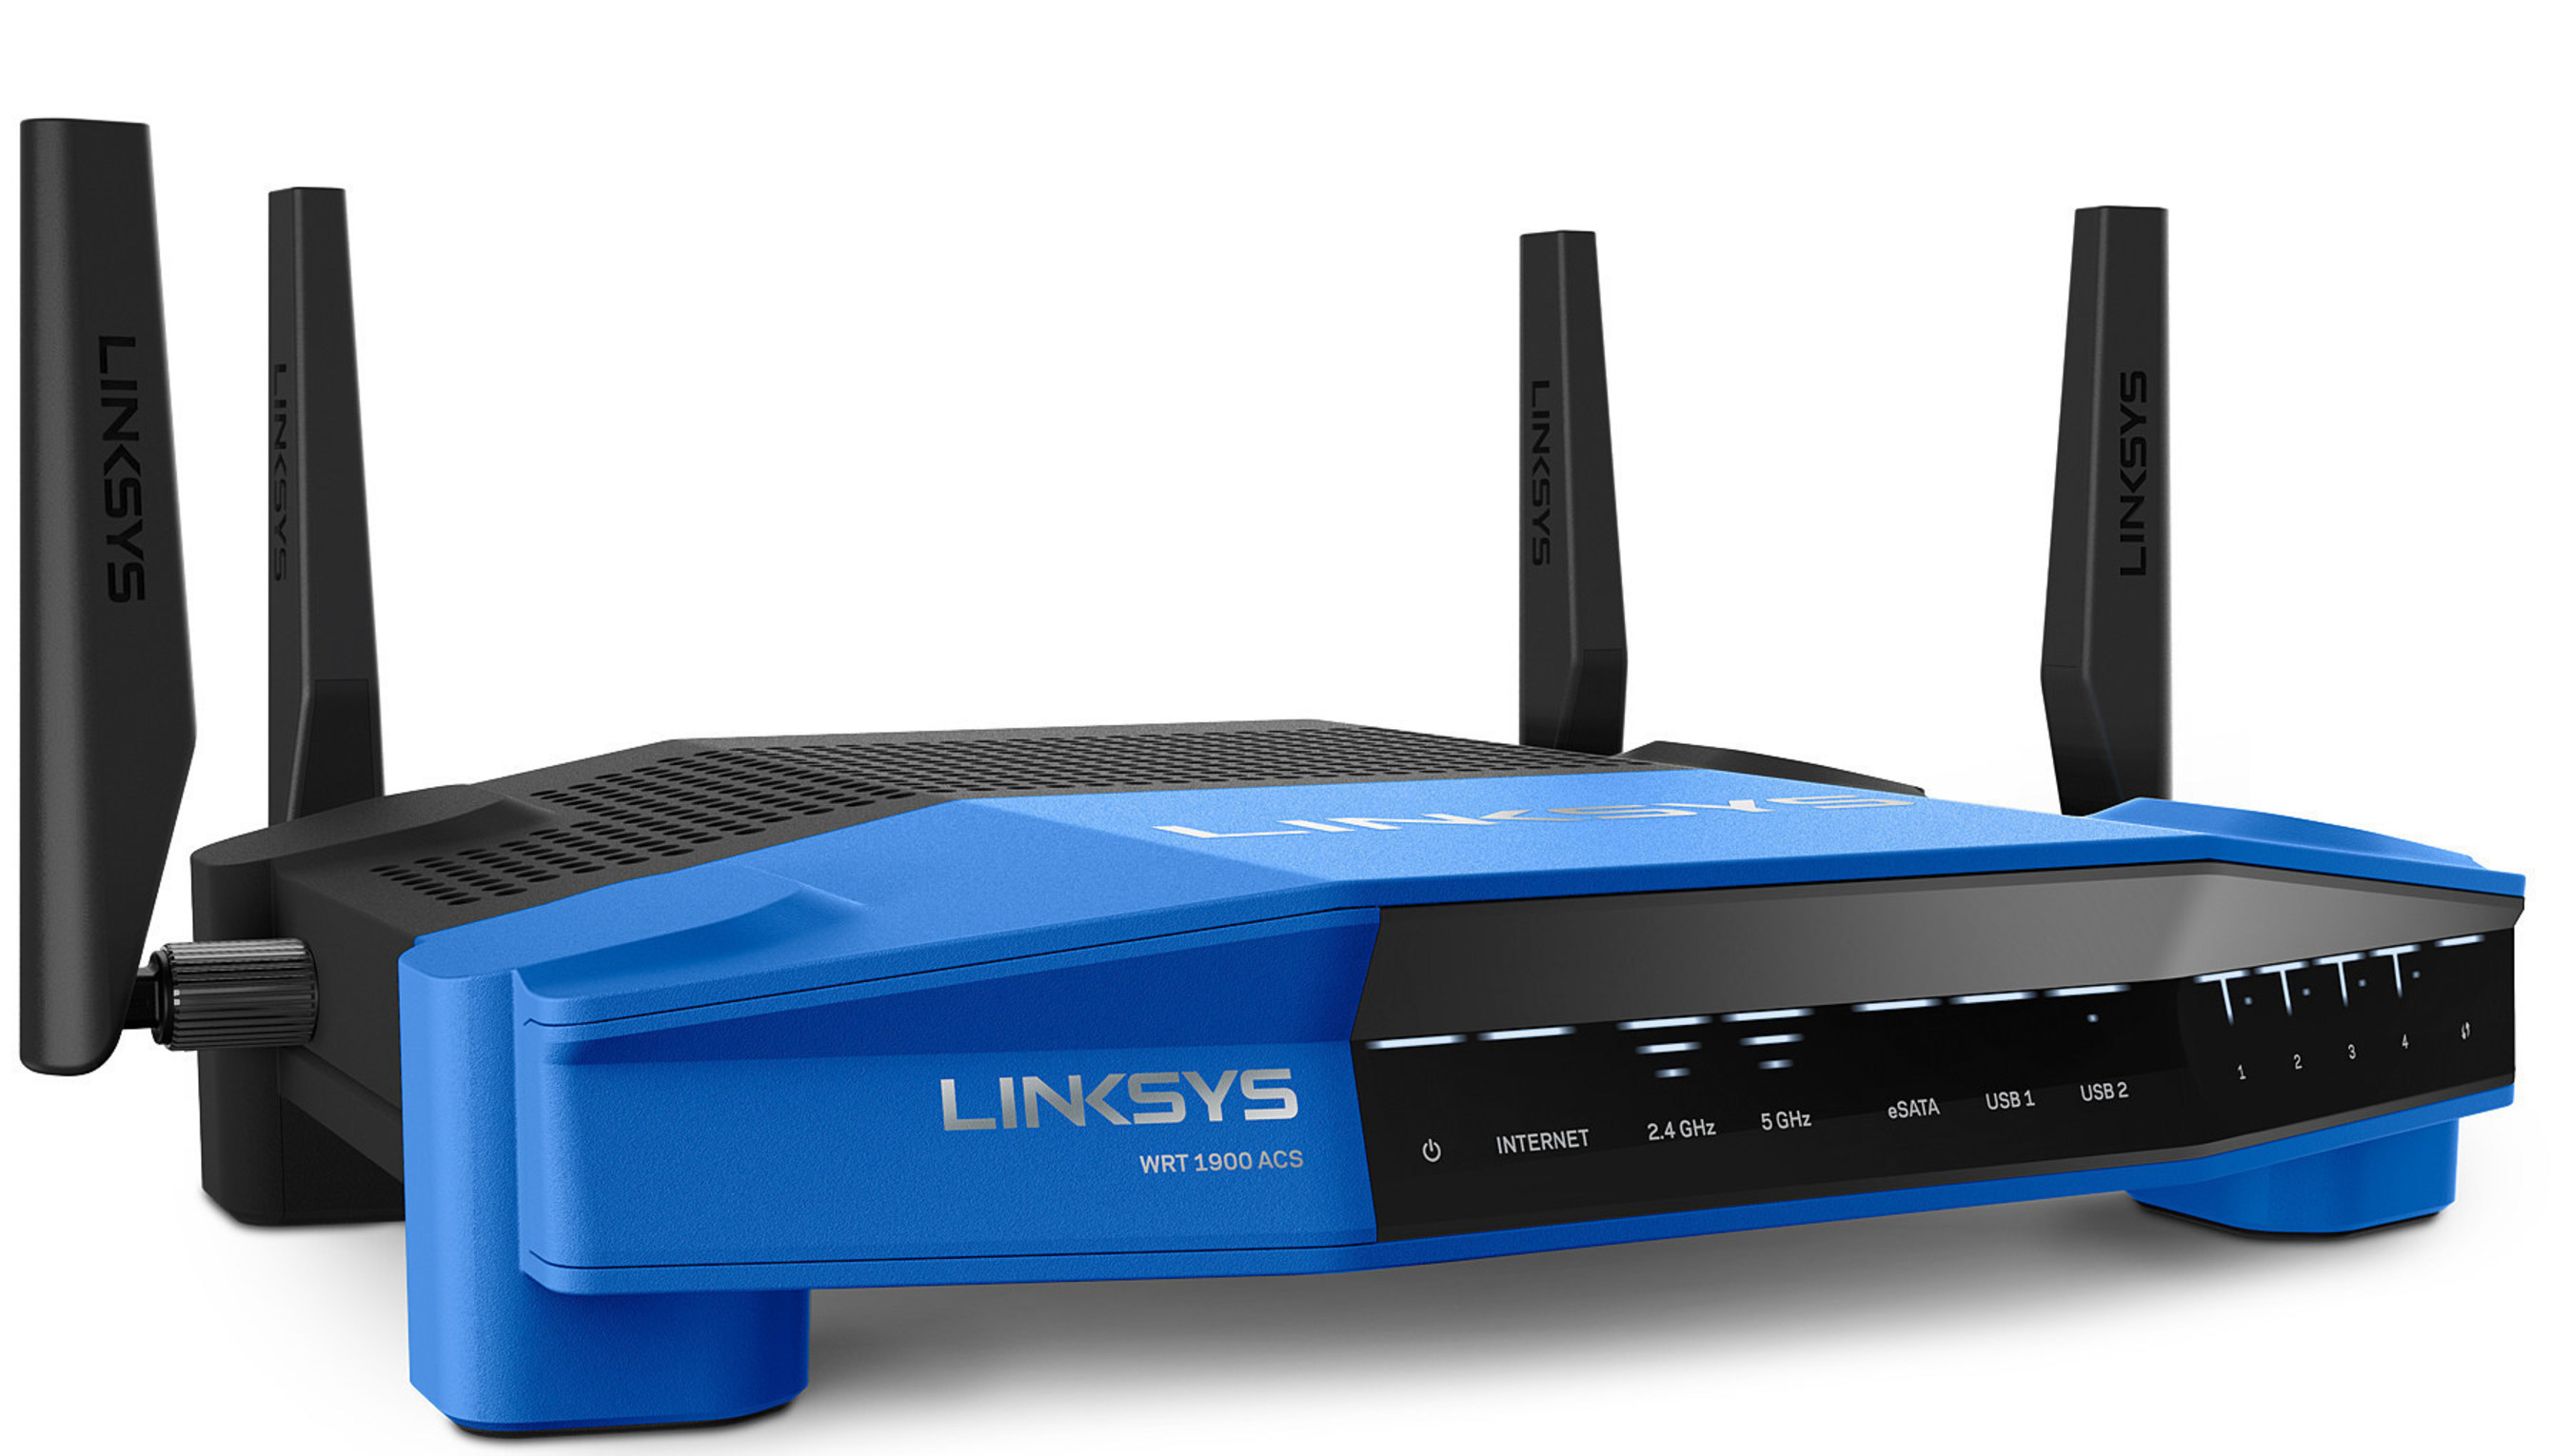 Linksys WRT routers - WRT1900AC, WRT1900ACS and WRT1200AC now support DD-WRT